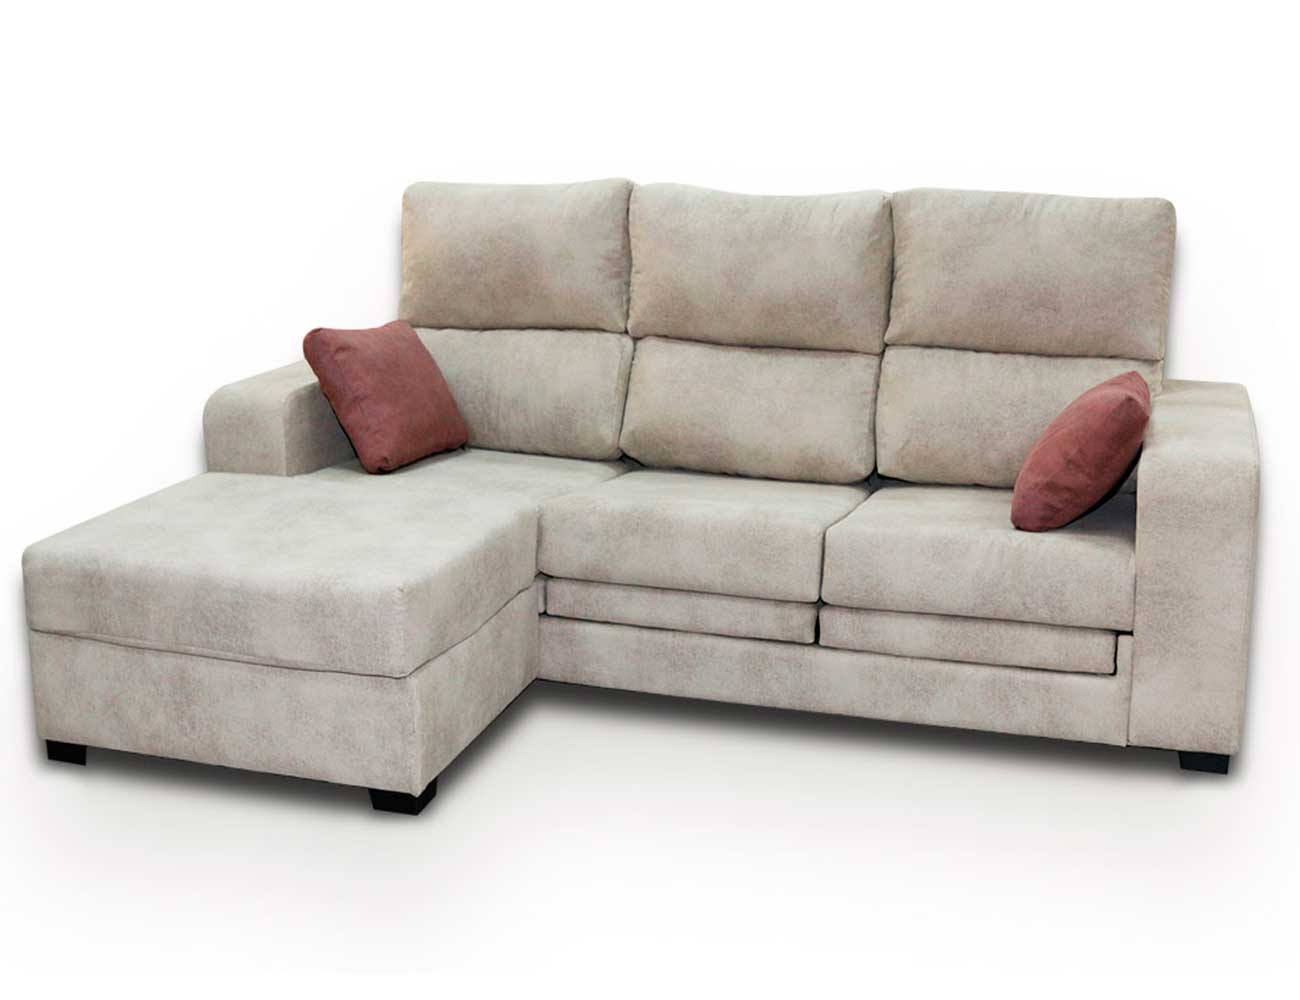 Sofa 3p puff reversible